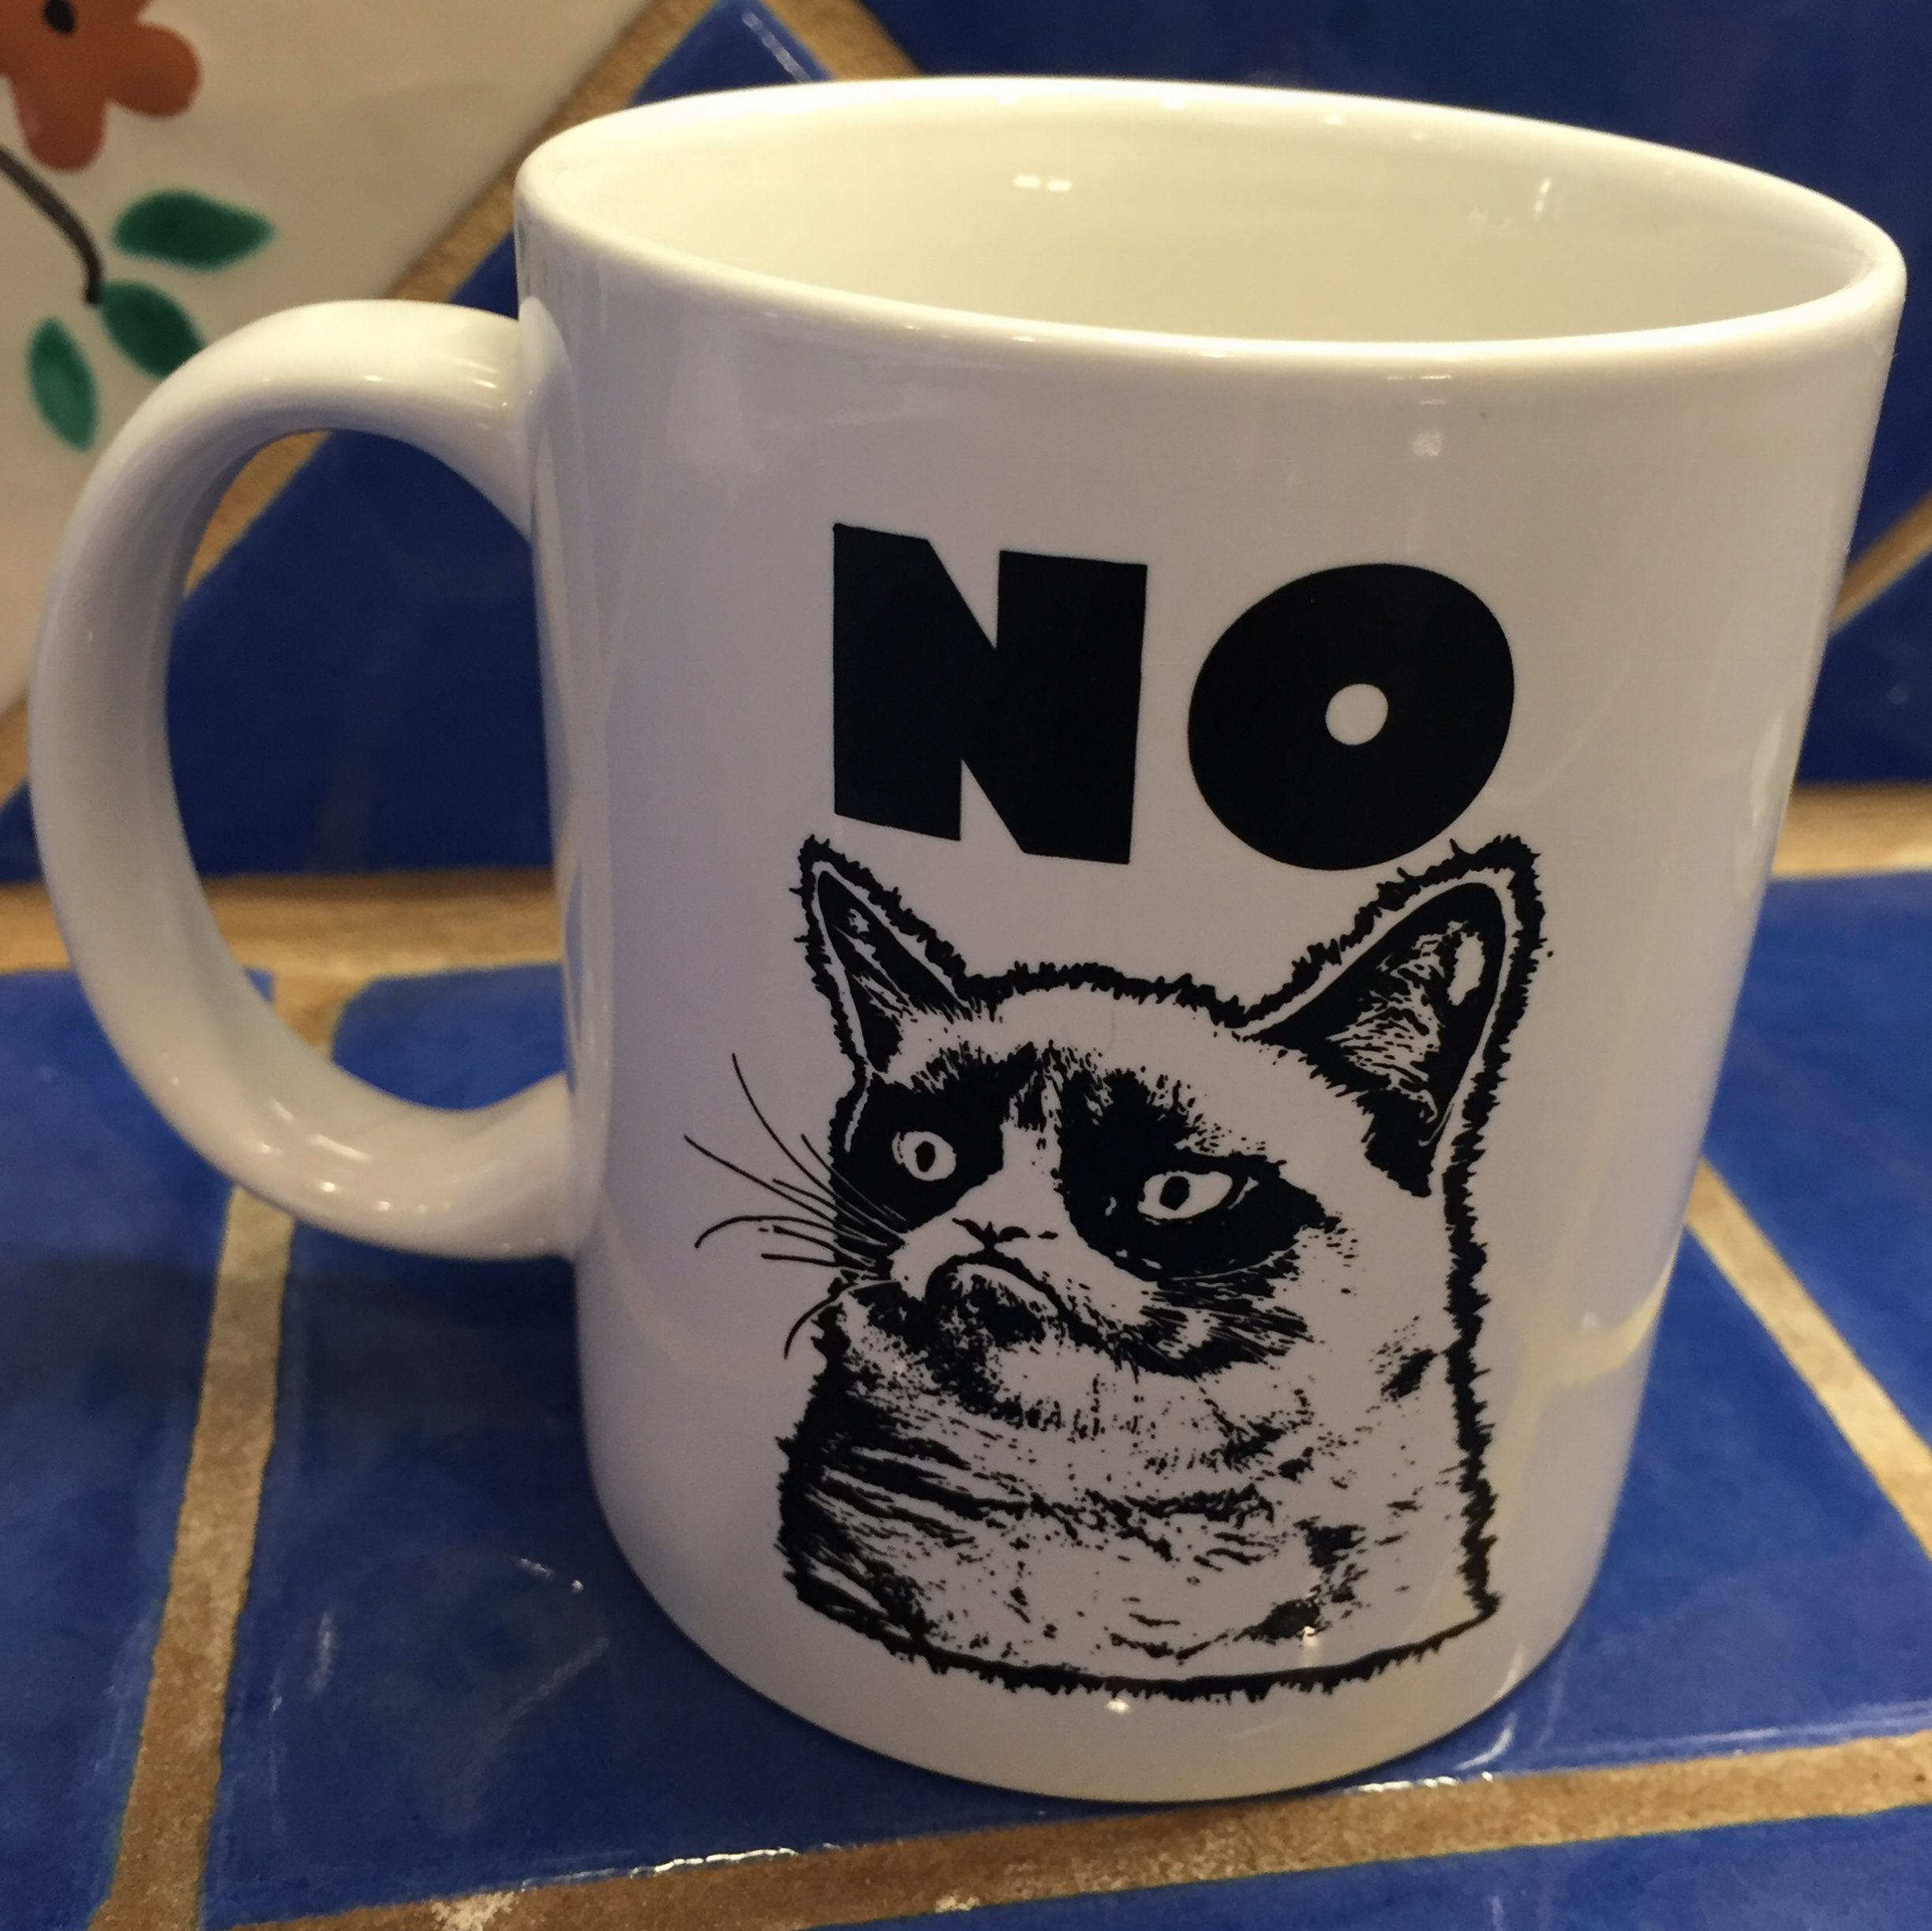 12 x 12 Grumpy Cat Rejection Mug